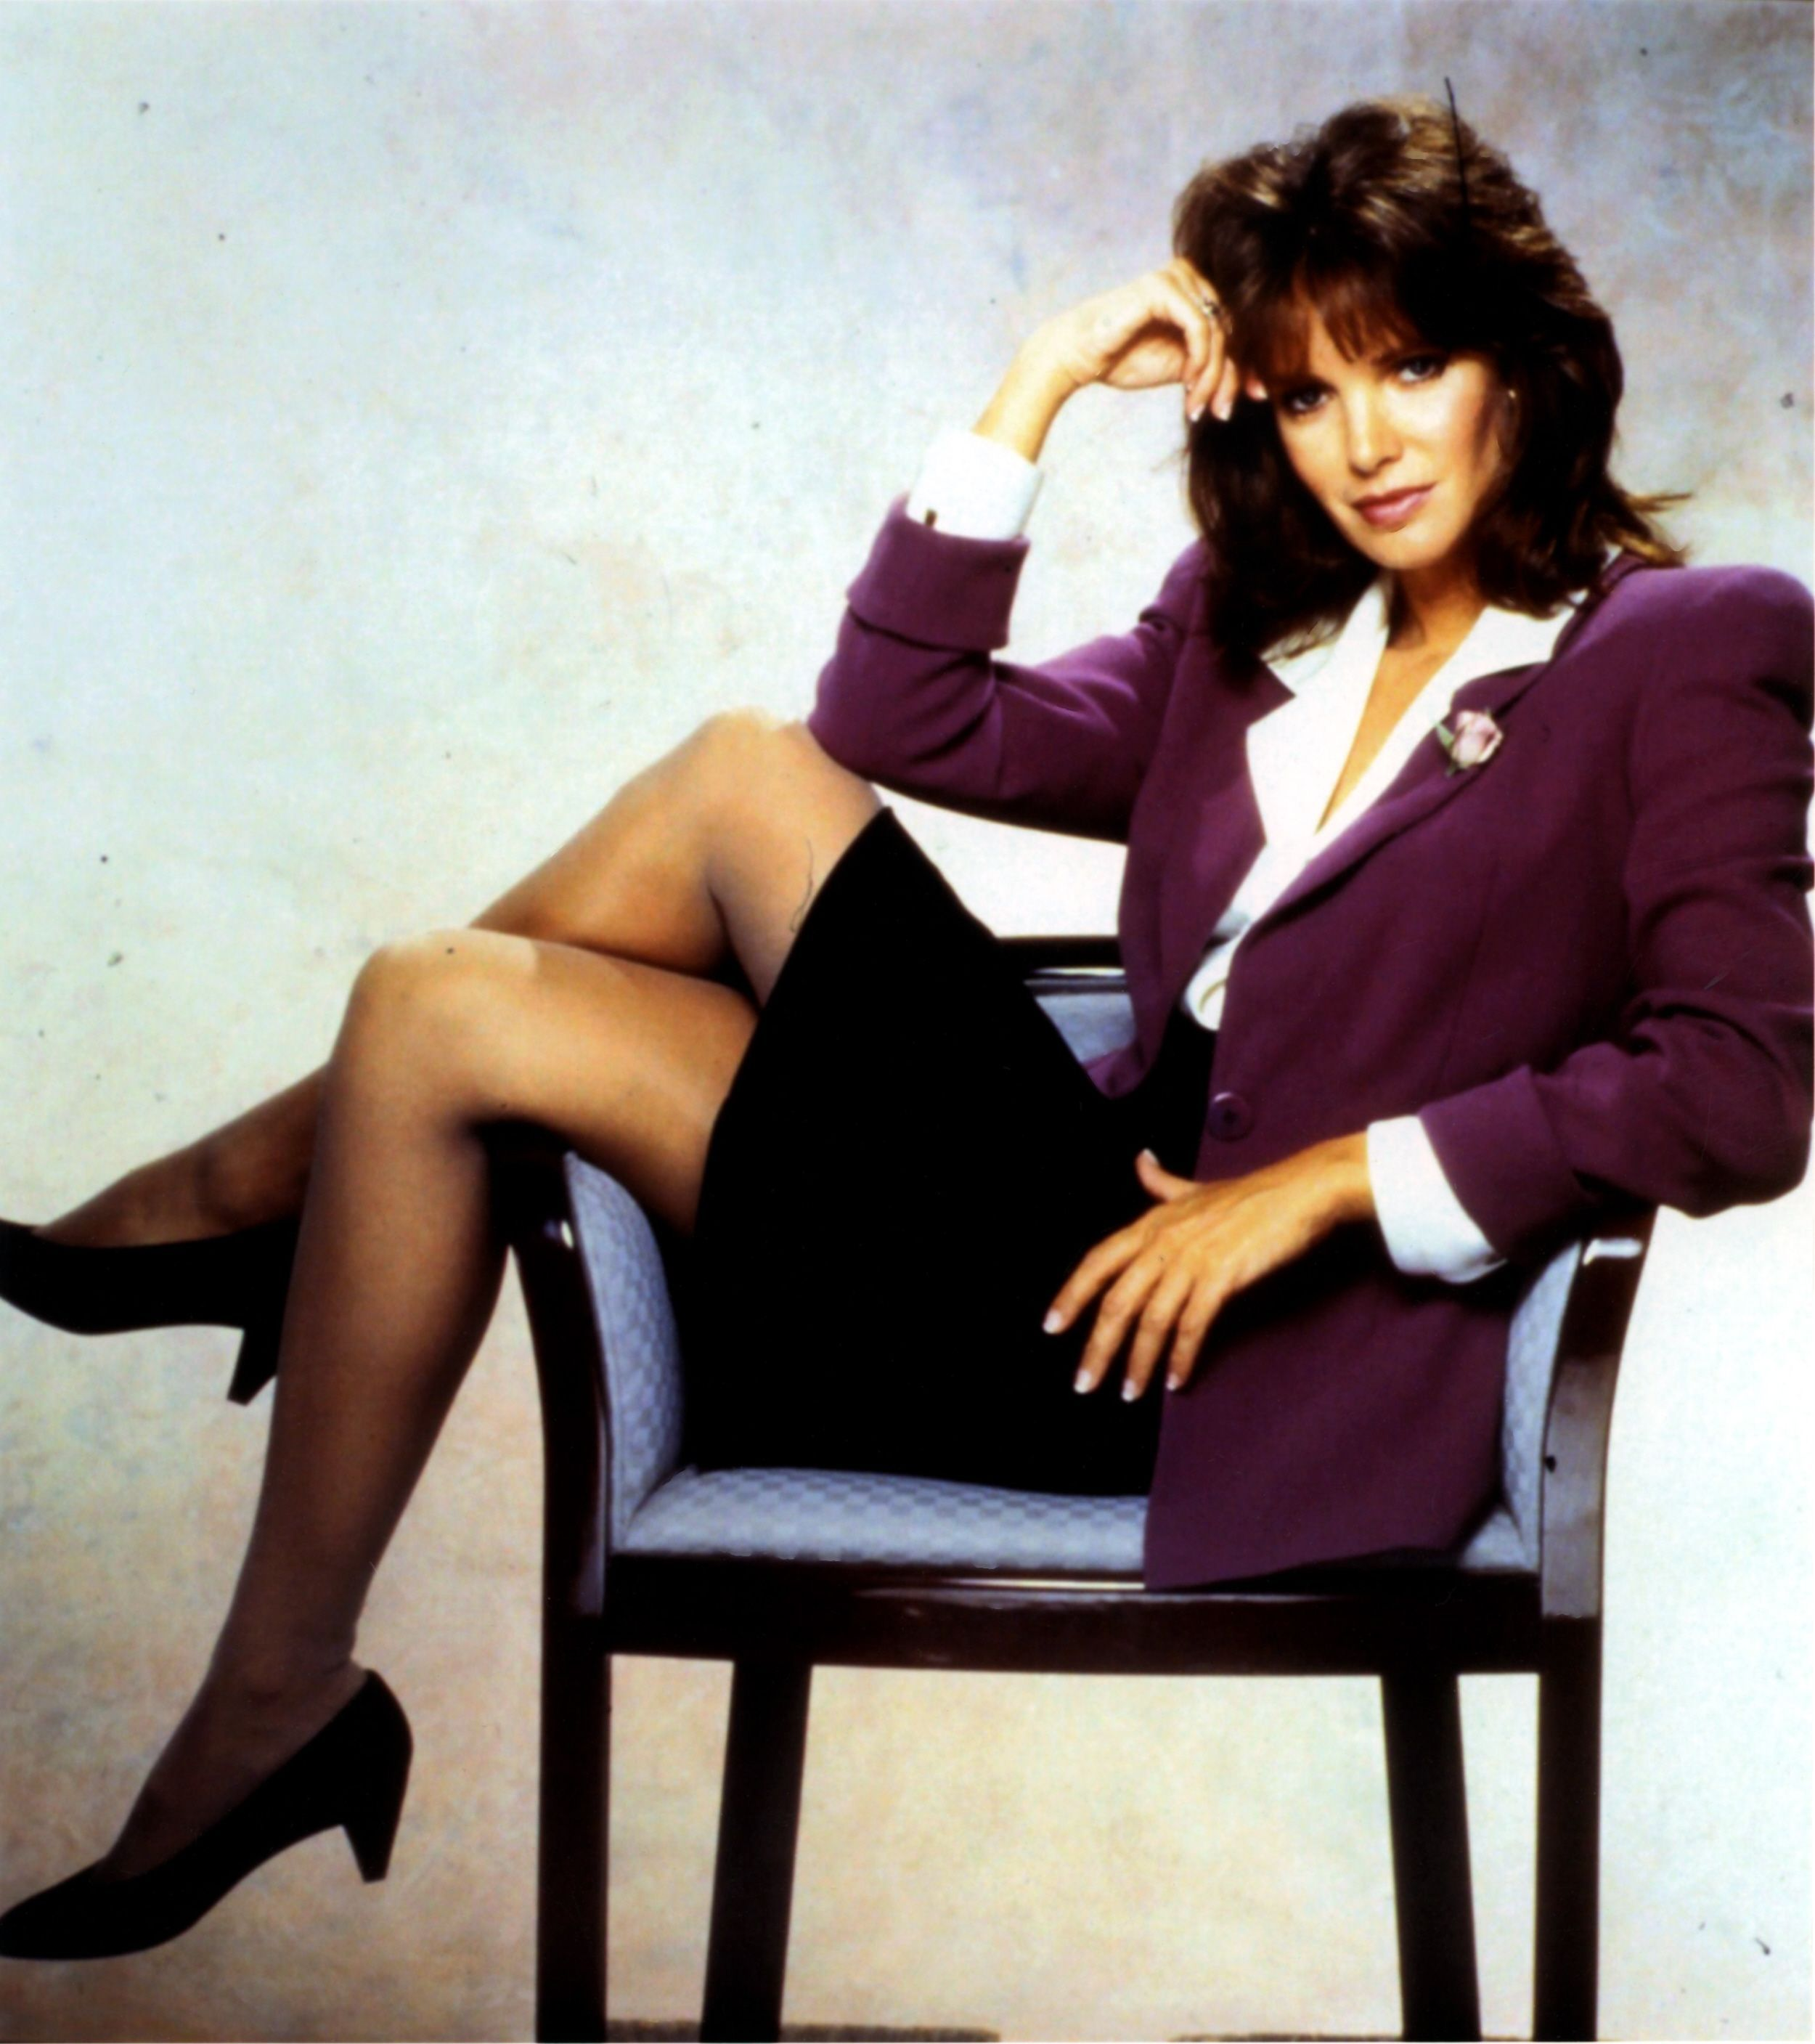 Jaclyn smith in stockings